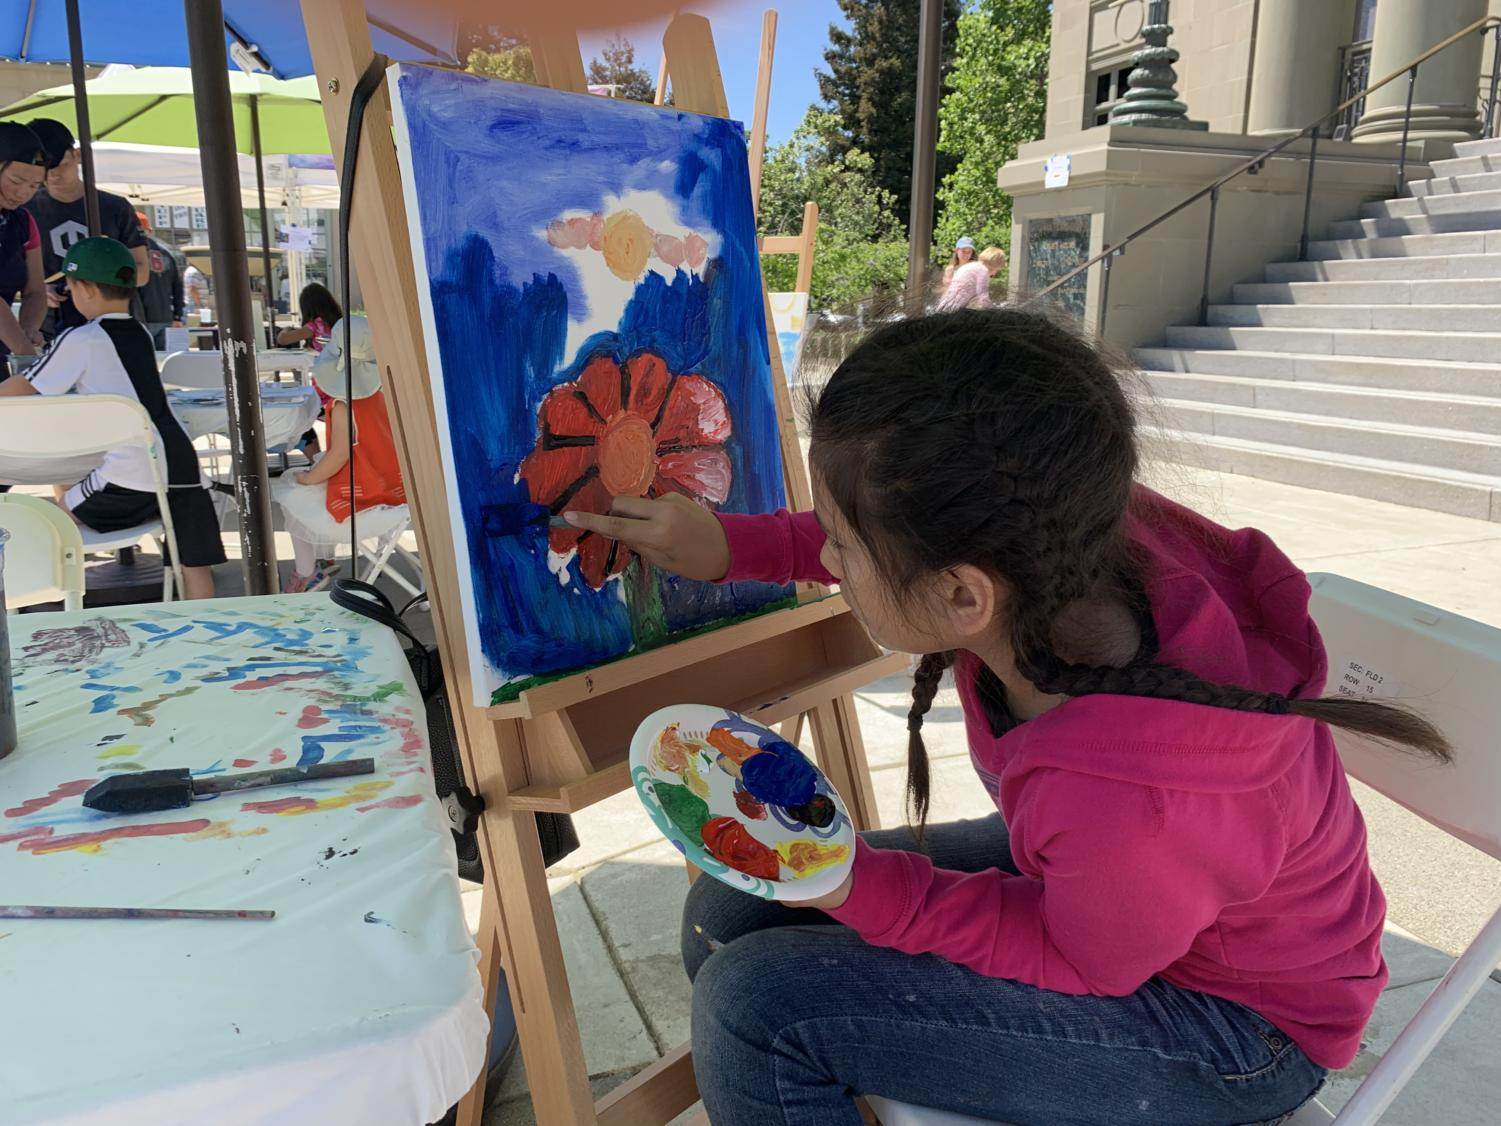 A+young+girl+uses+her+finger+to+paint+a+large+red+flower.